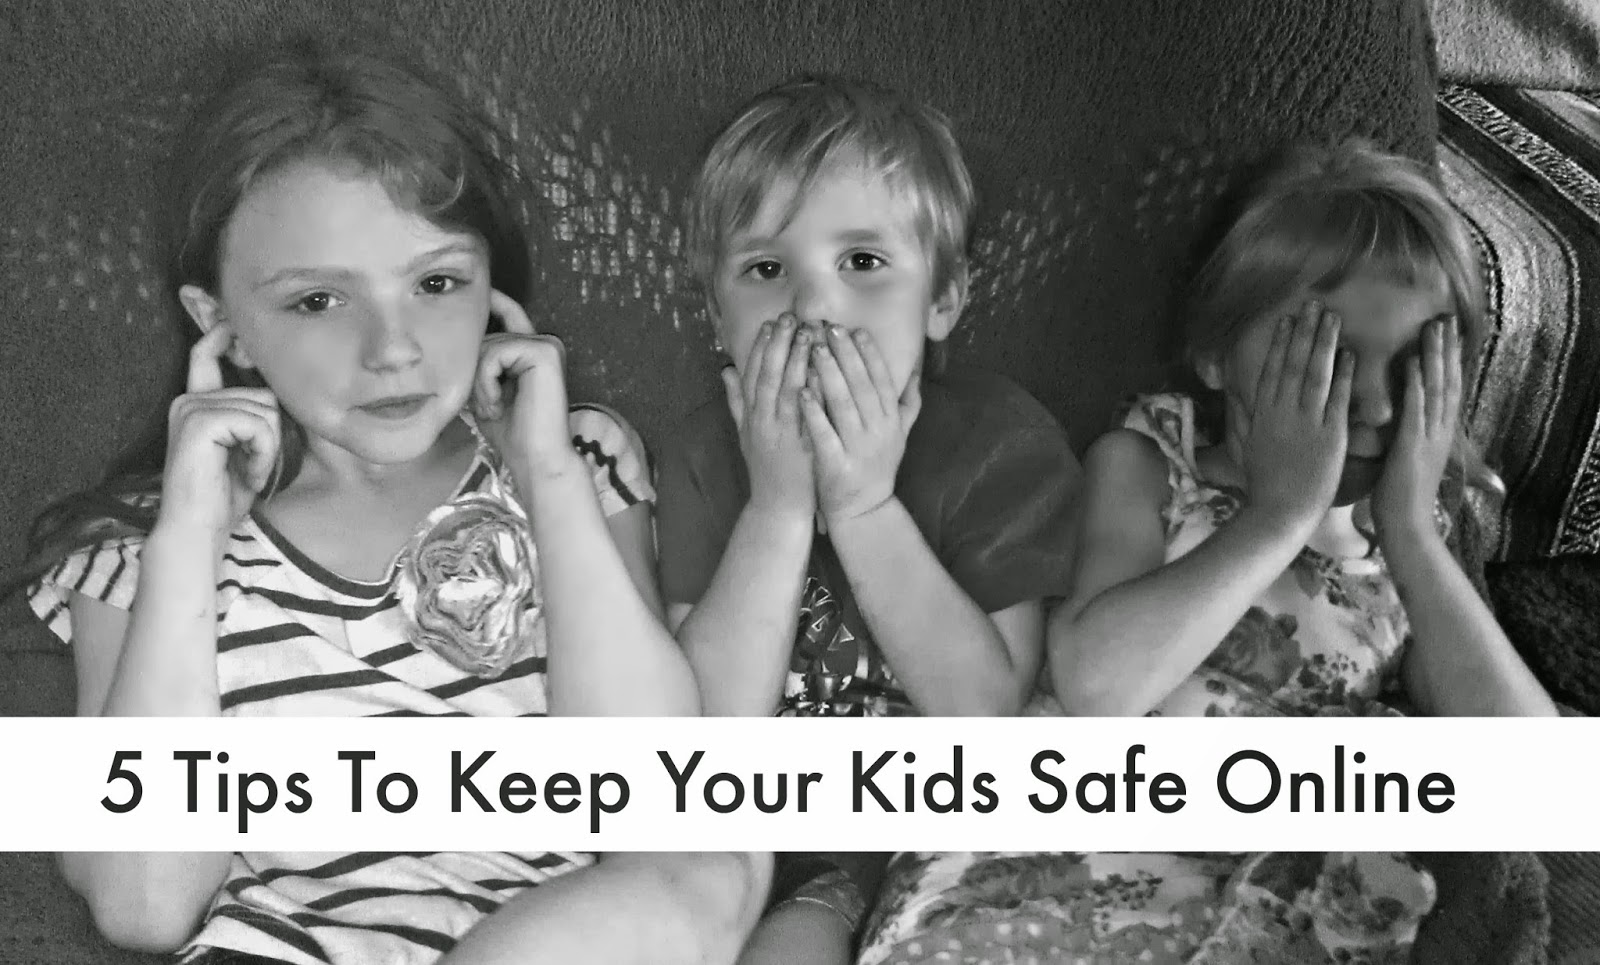 #shareawesome #clevergirls #cg #ad 5 tips to keep your kids safe online